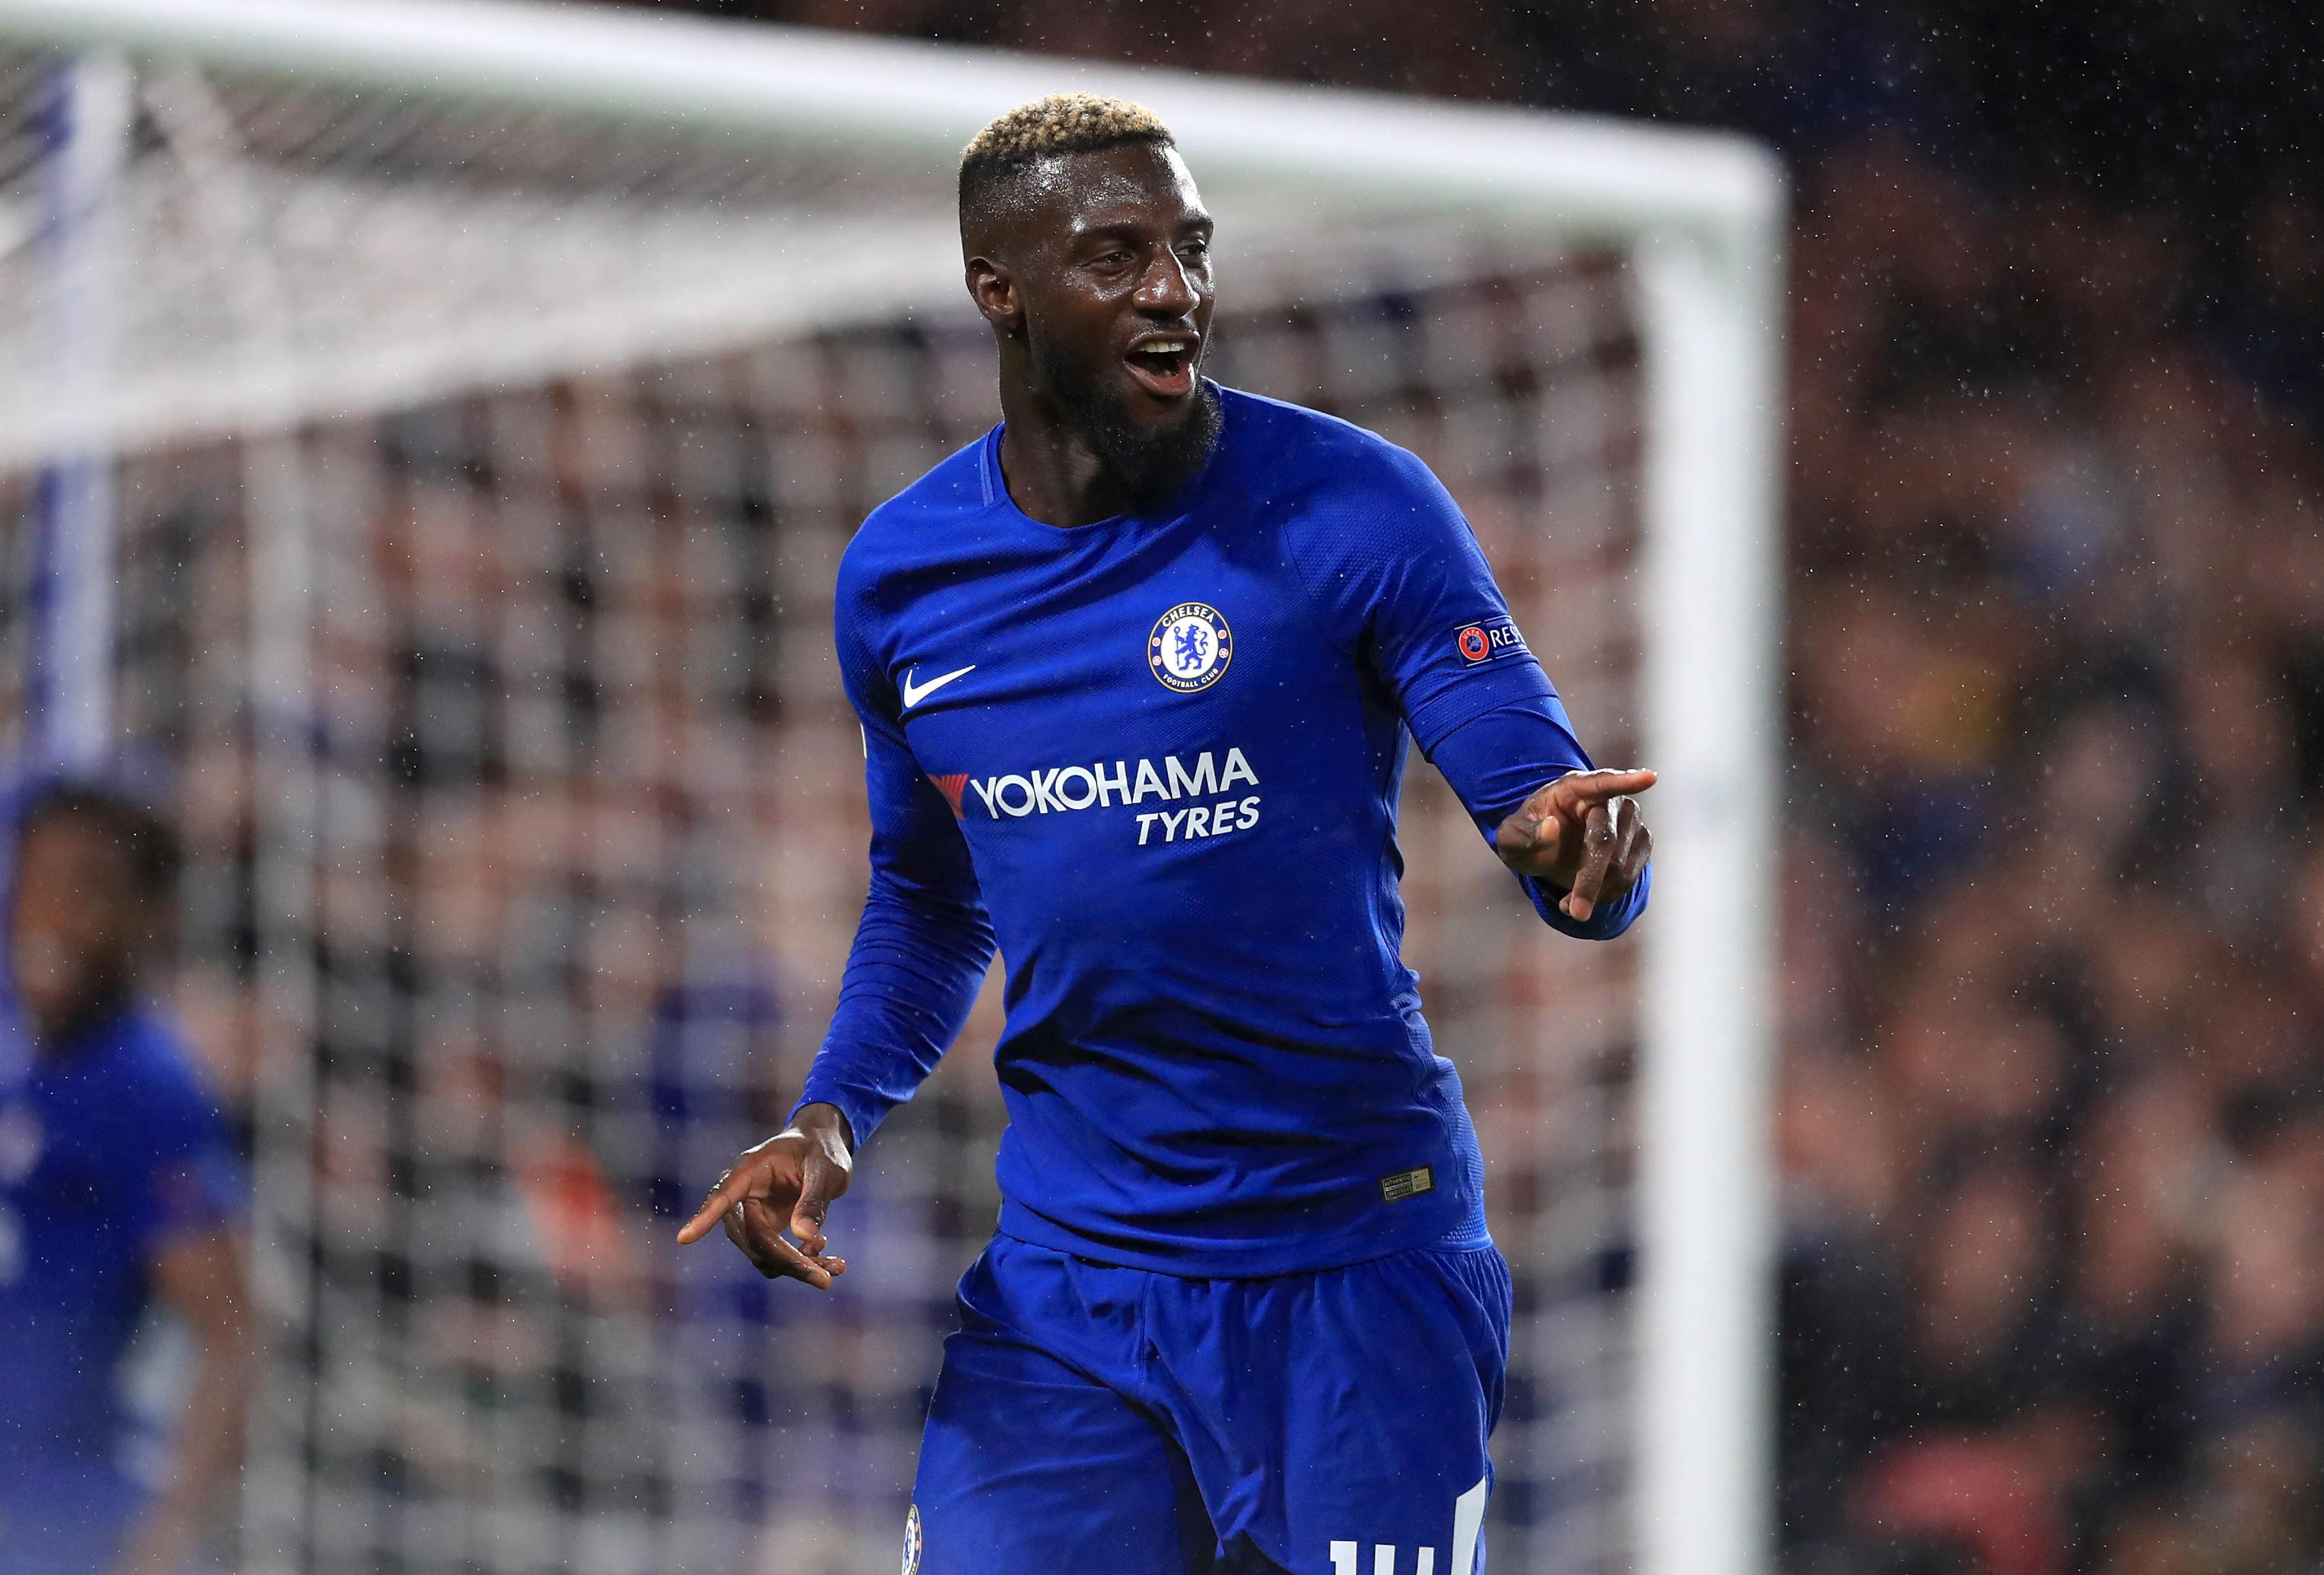 Bakayoko's influence next to Kante could be key